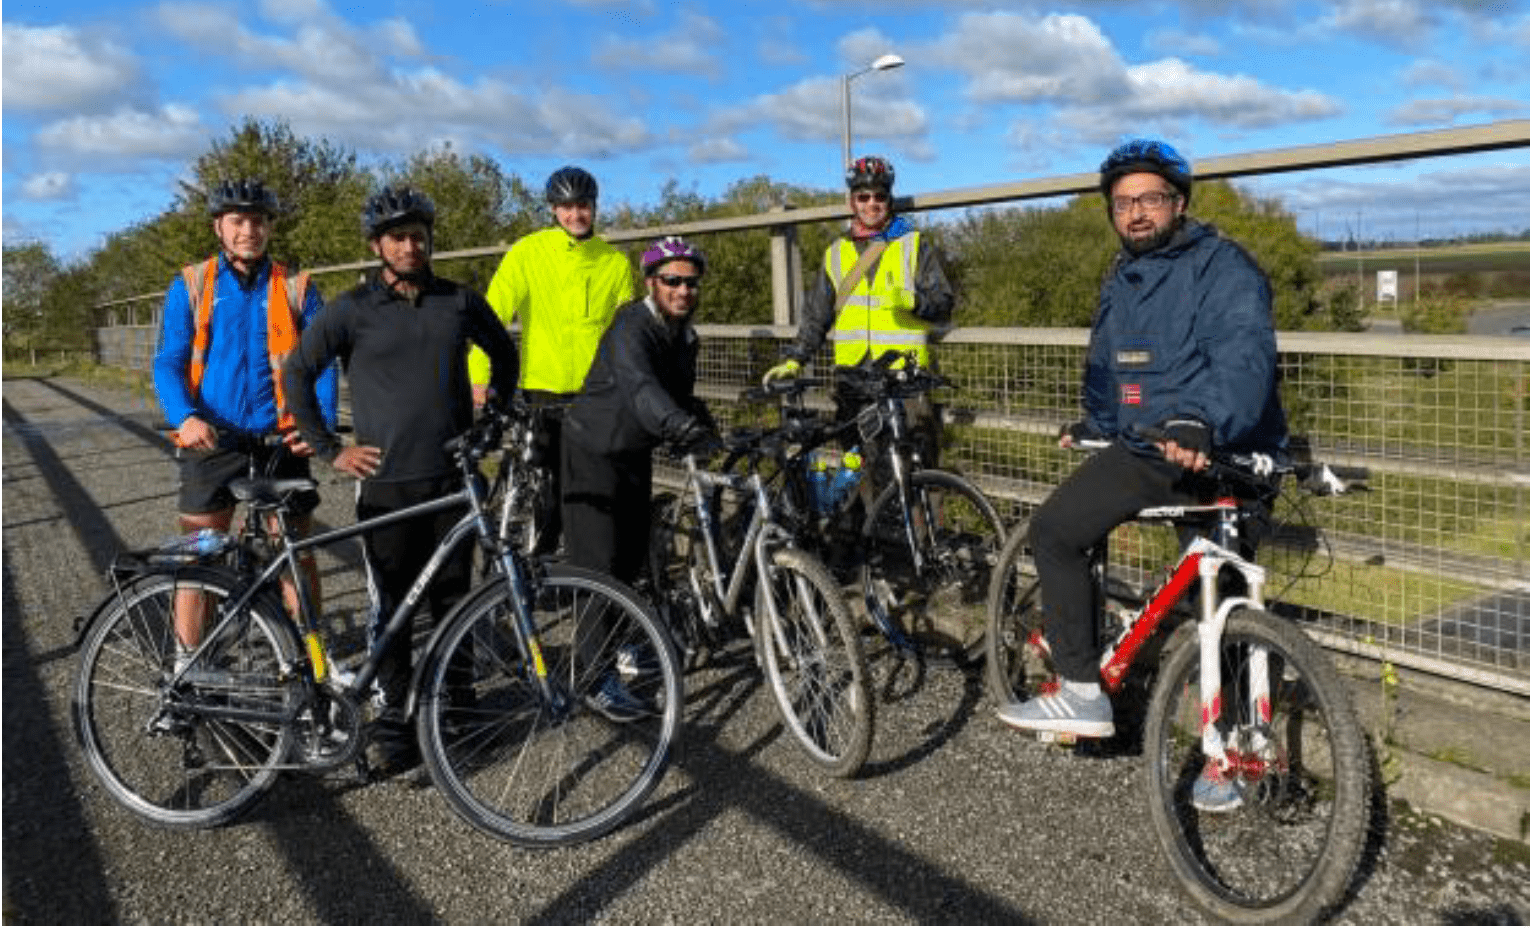 Group of cyclists from the project stopped on a bridge during group ride